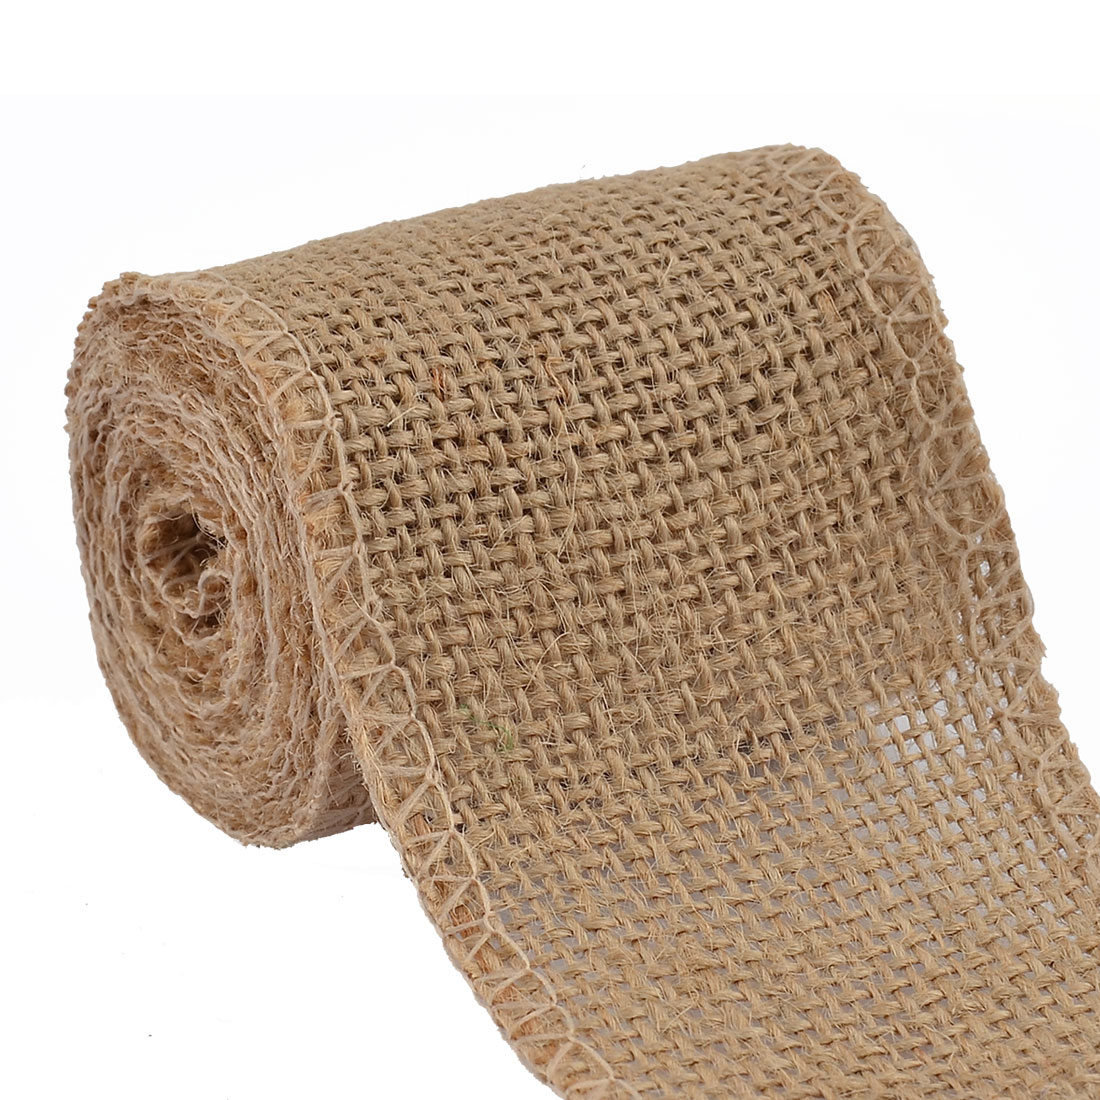 Wedding Jute Belt String Packing Strap Craft Burlap Ribbon Roll Ecru 2.2 Yard